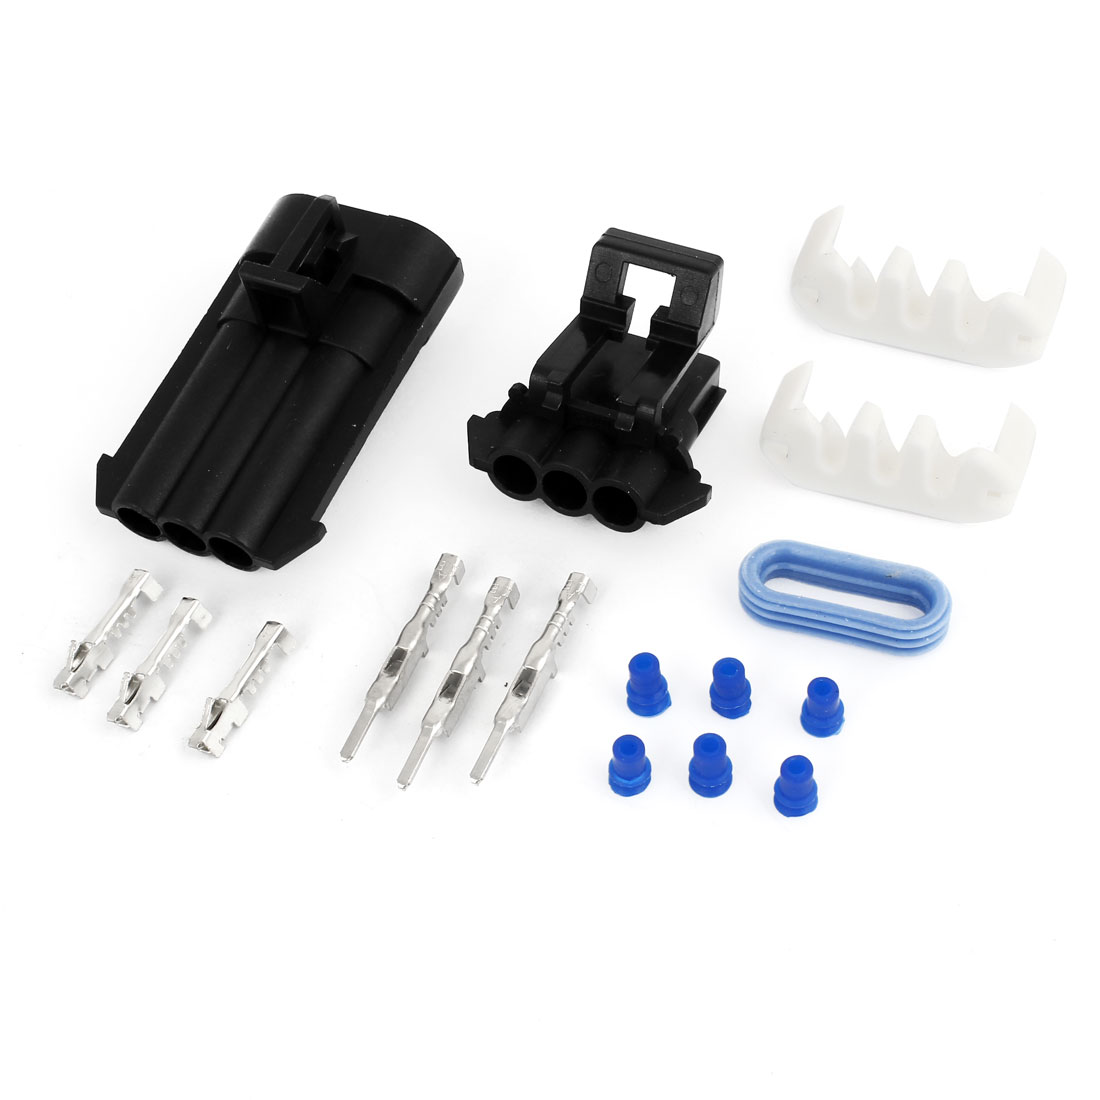 Unique Bargains Kits 3 Pin Weather Proof 3 Way Connector Car Scooter ATV UTV RV